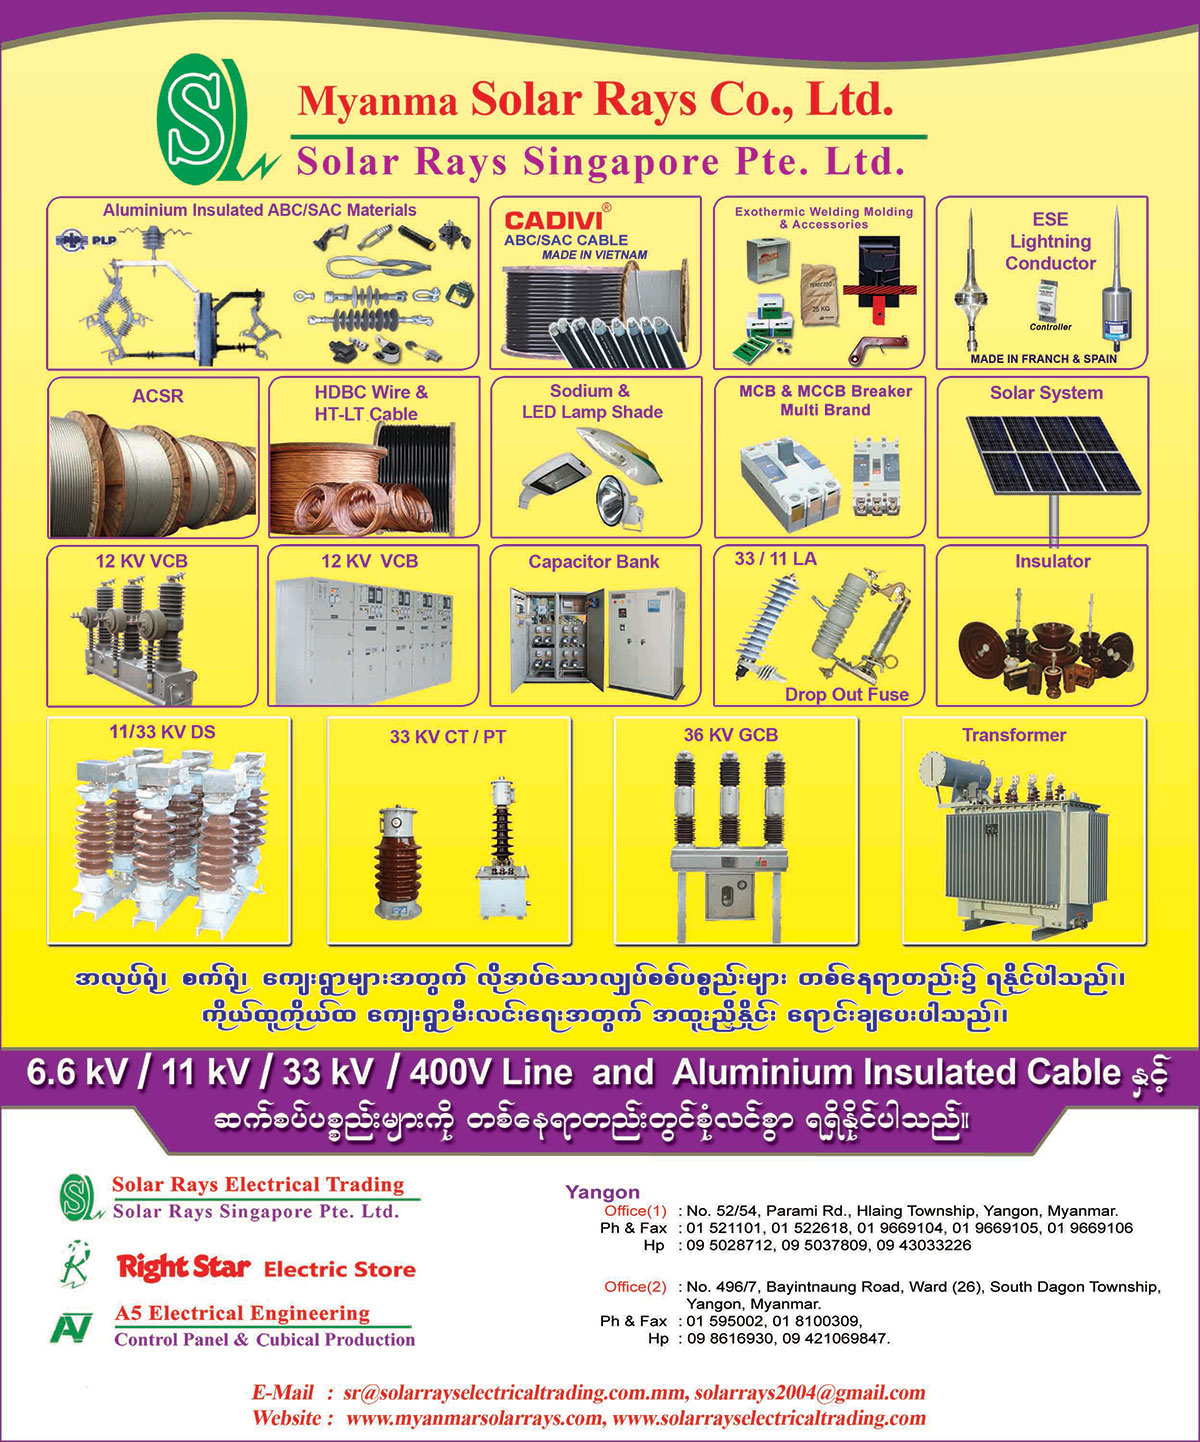 Myanma Solar Rays Co., Ltd.Electrical Goods Sales